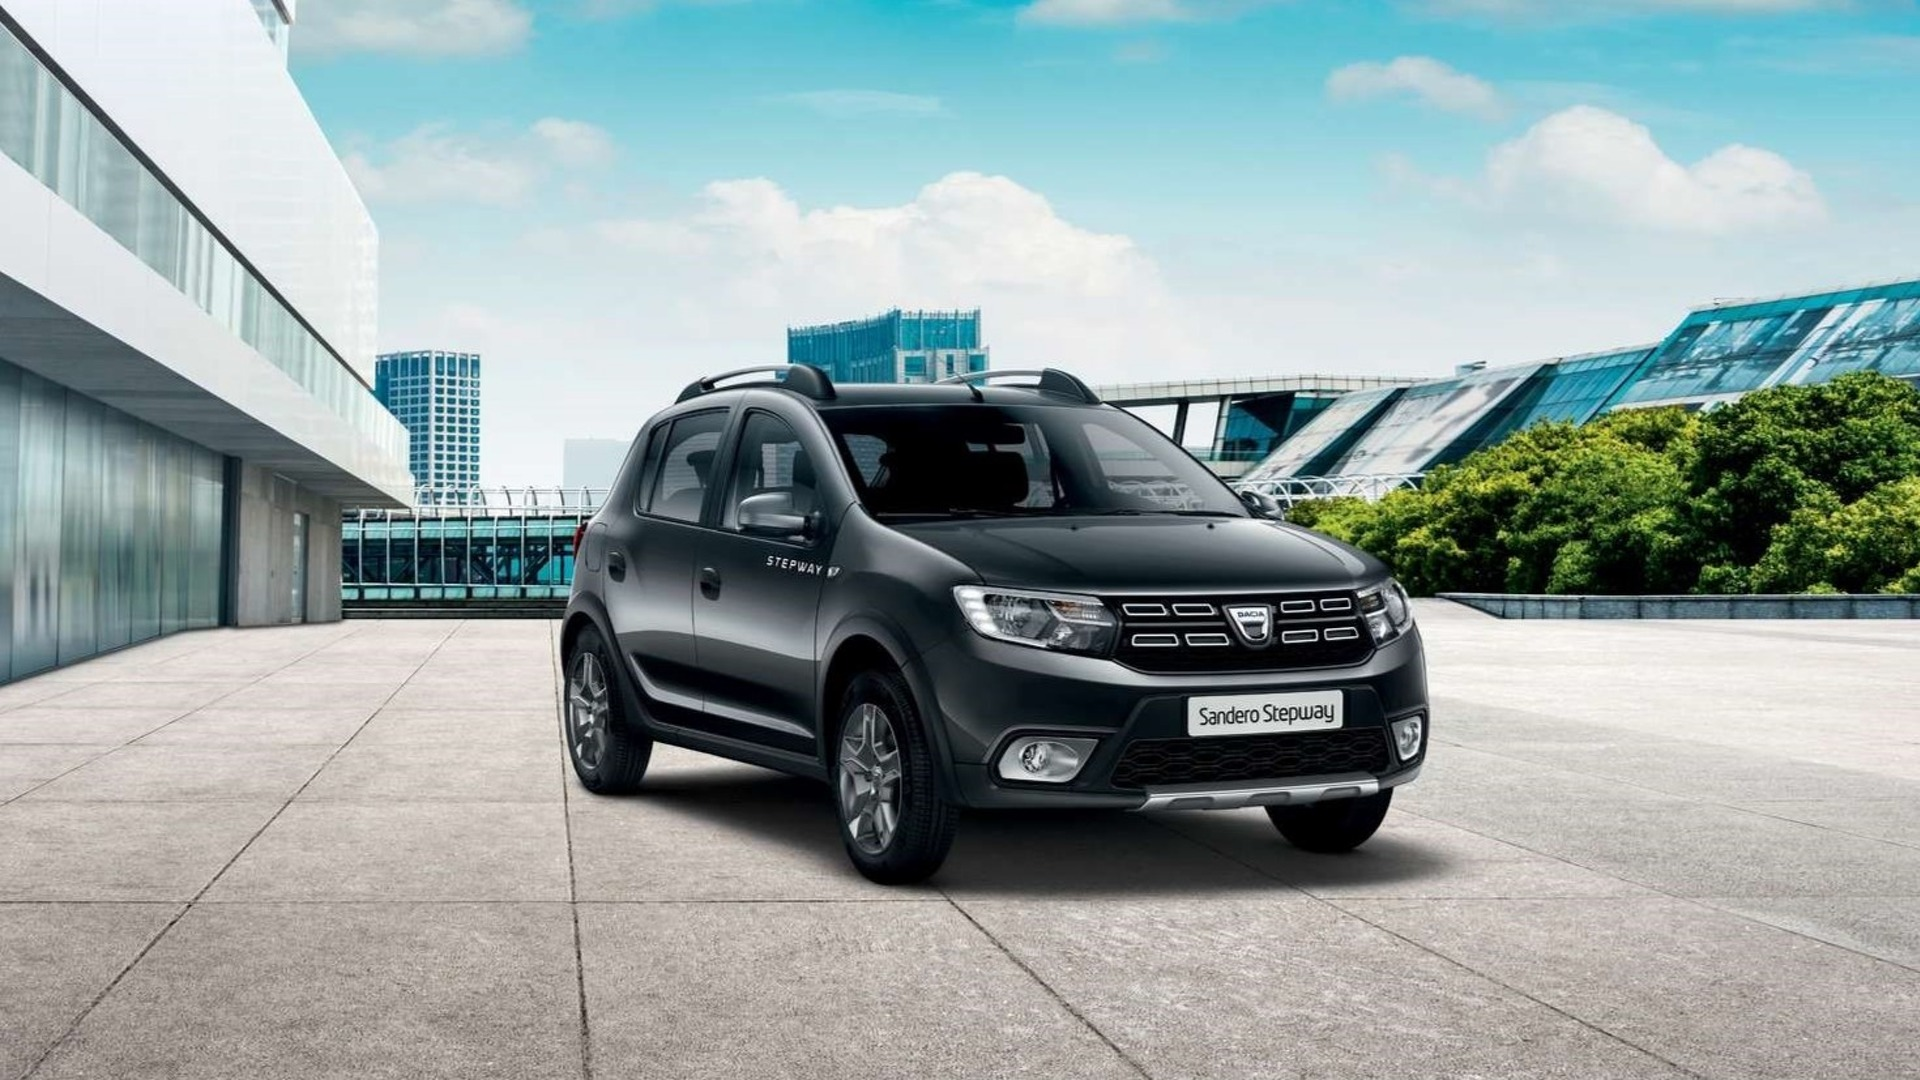 You may pick your own Sandero Stepway Urban for €10,500 at most, which makes it more than €2,500 cheaper than the gas turbo version